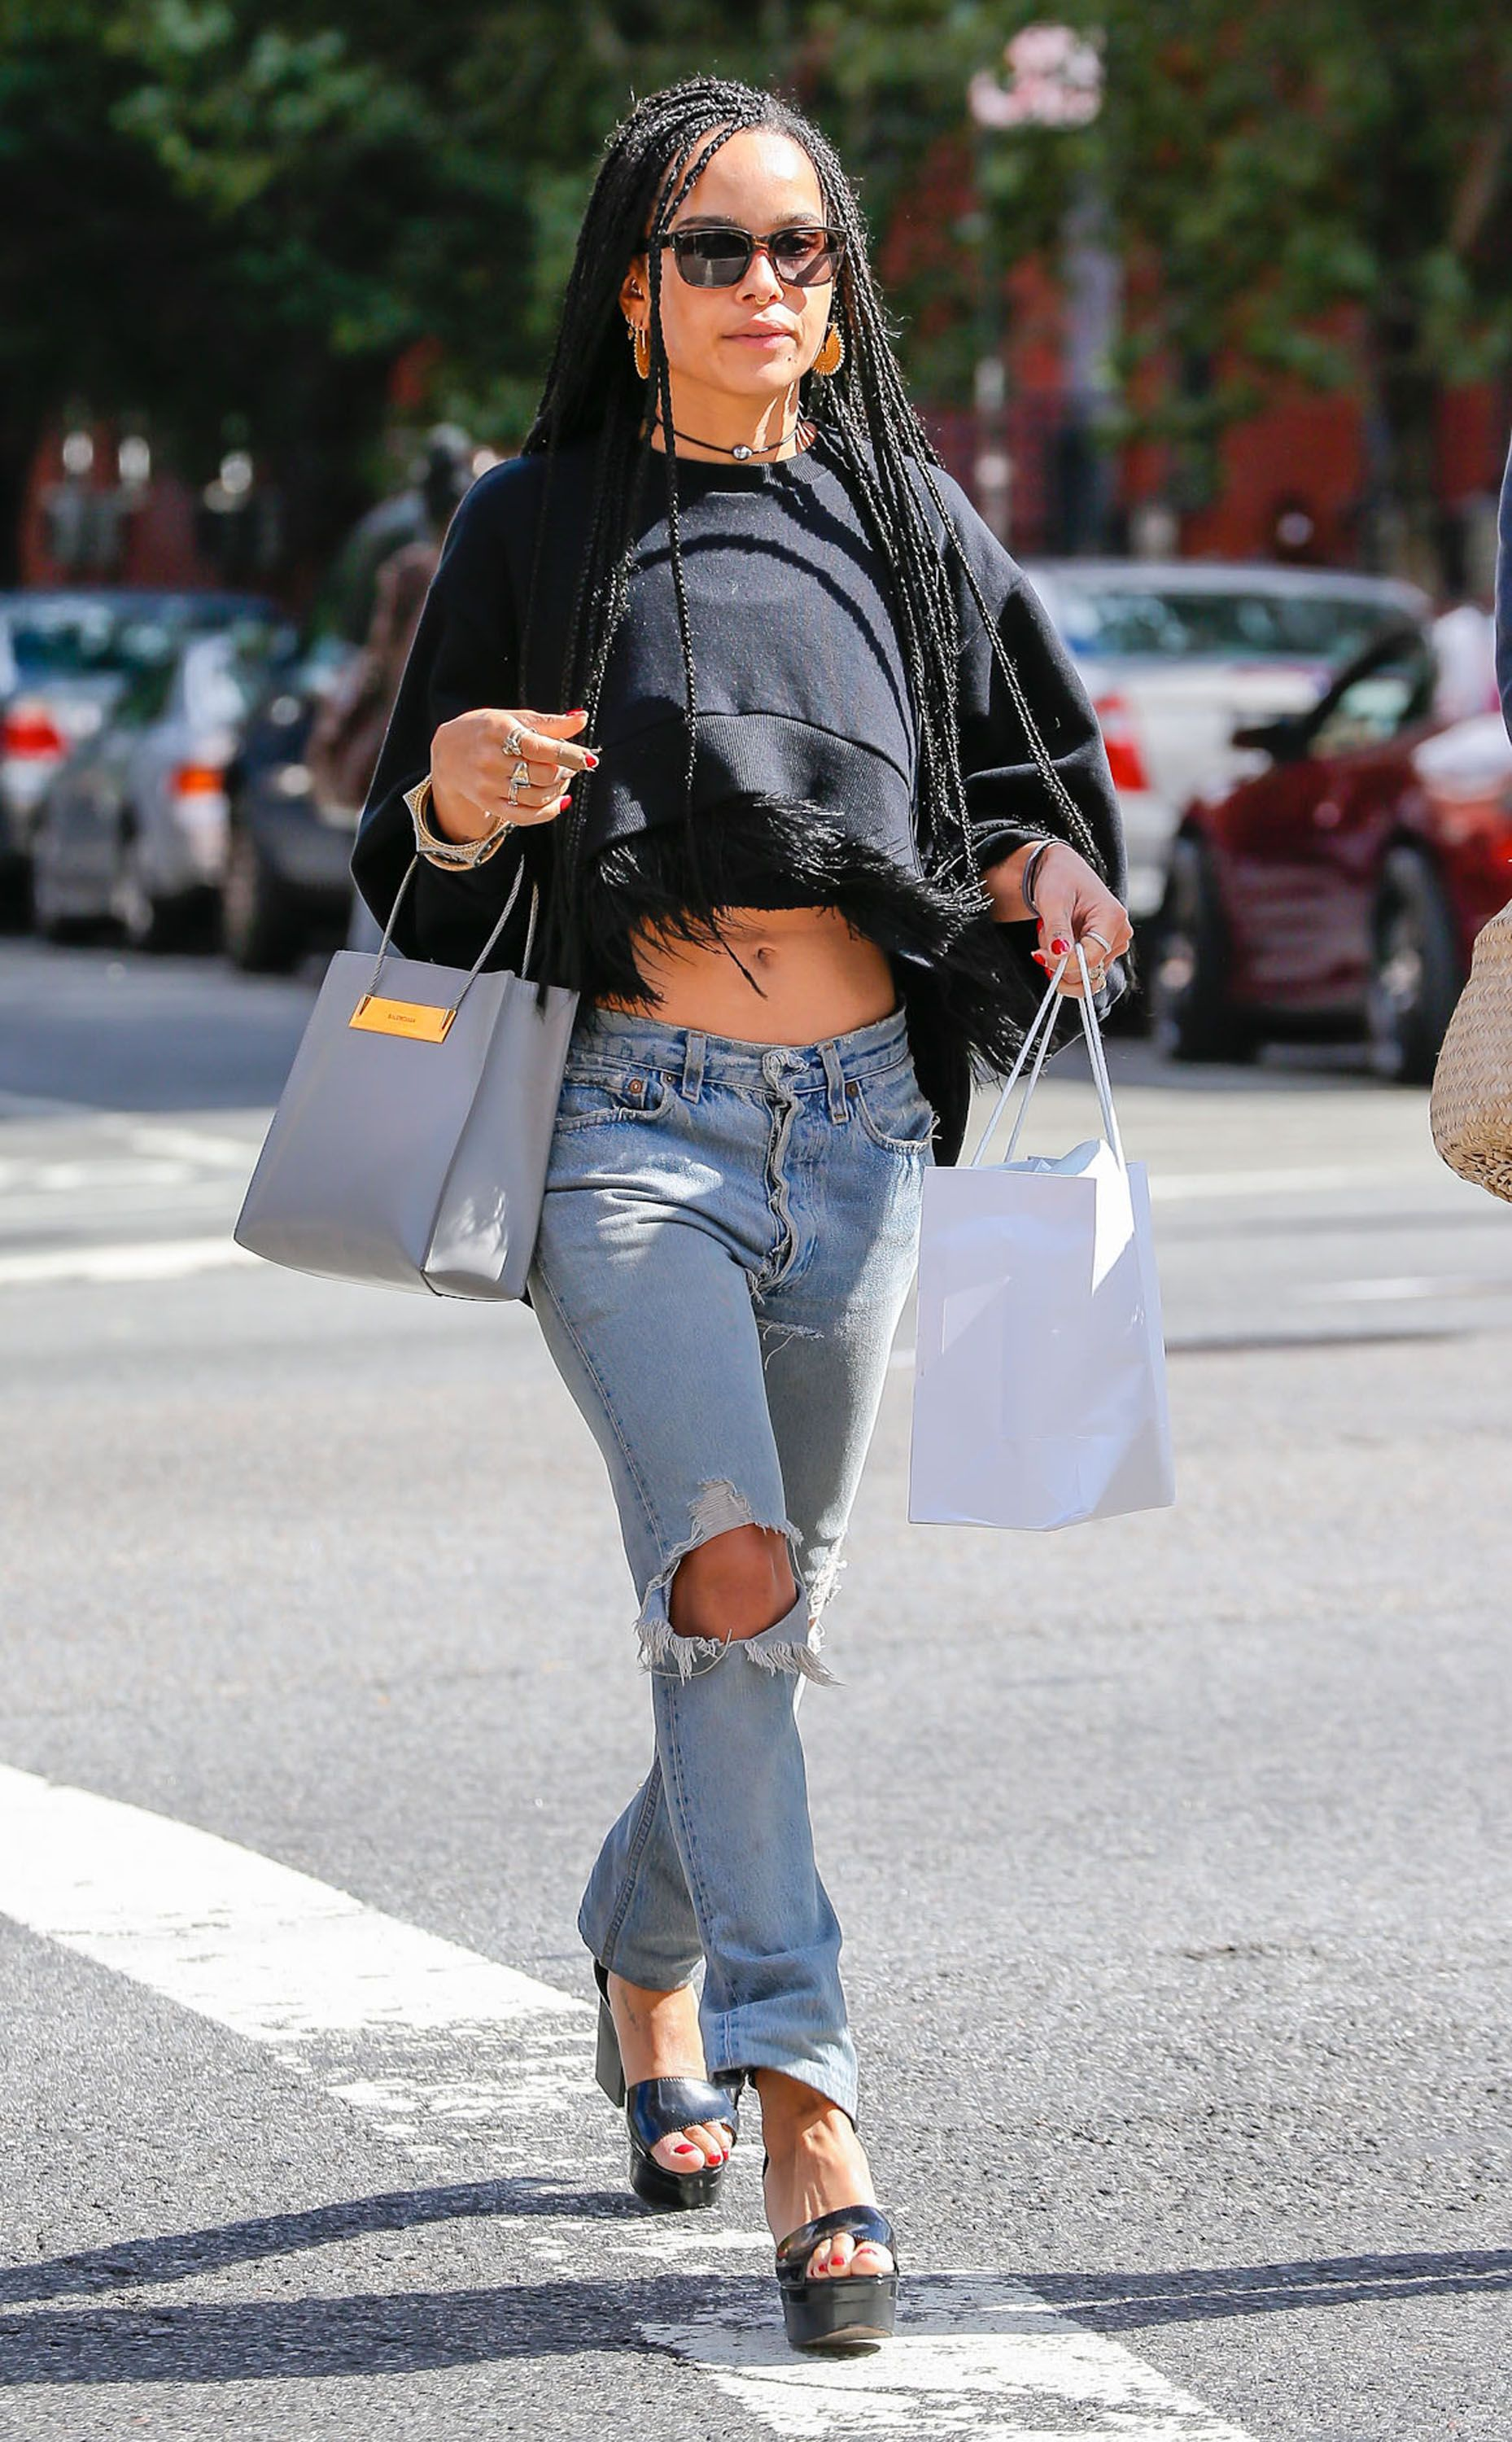 Lenny kravitz pants tear bing images - Zoe Kravitz S New Look Will Definitely Make You Do A Double Take